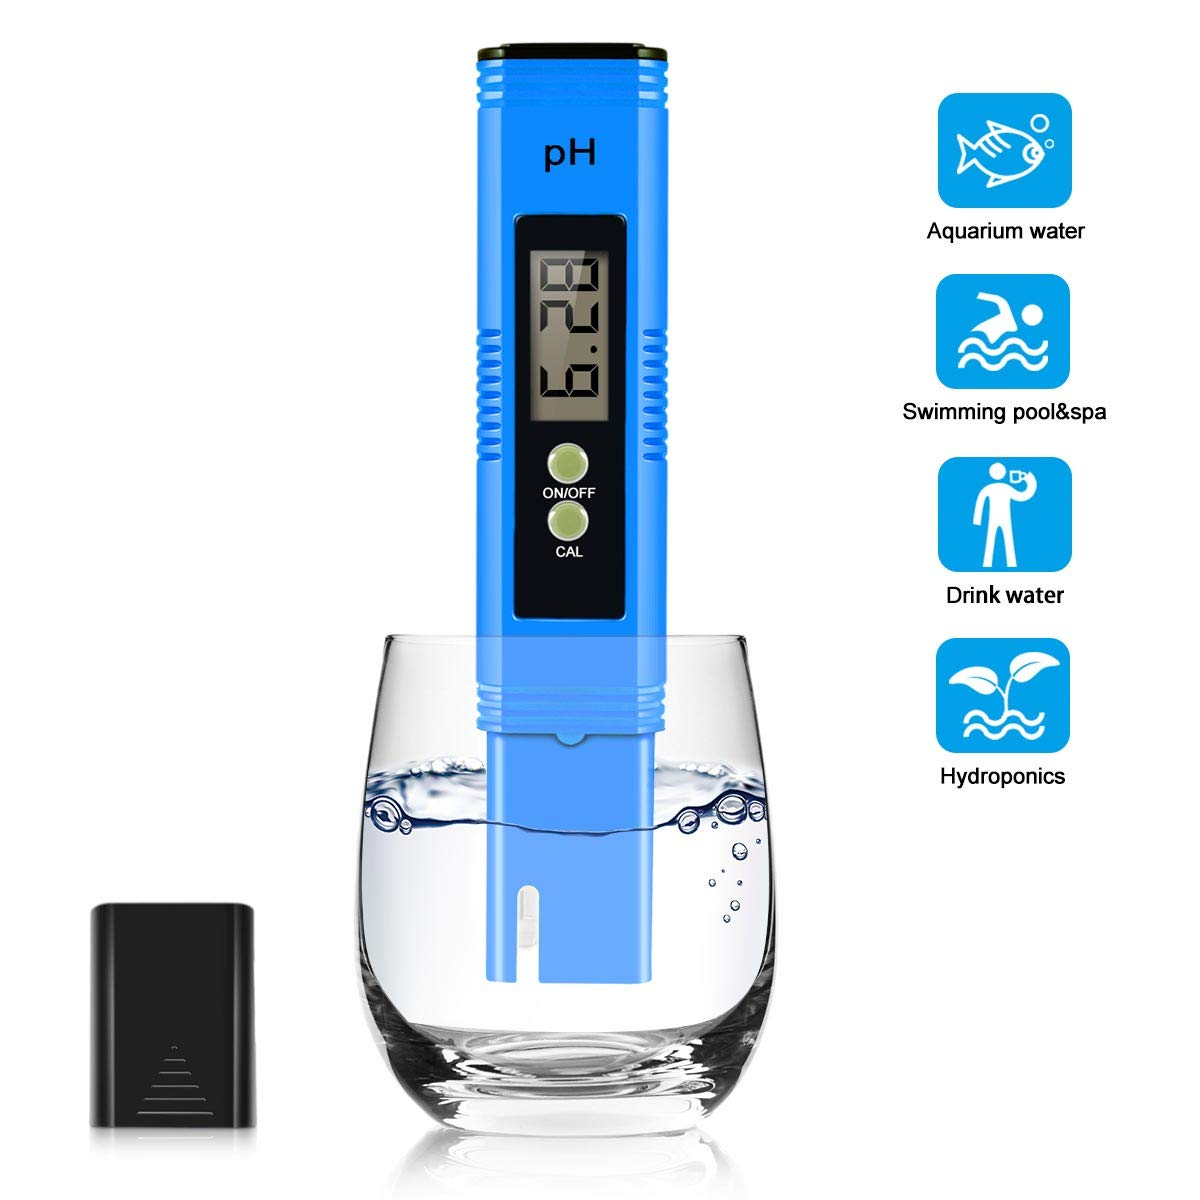 Digital pH Meter Quality Tester for Household Drinking Water Aquarium Hydroponic